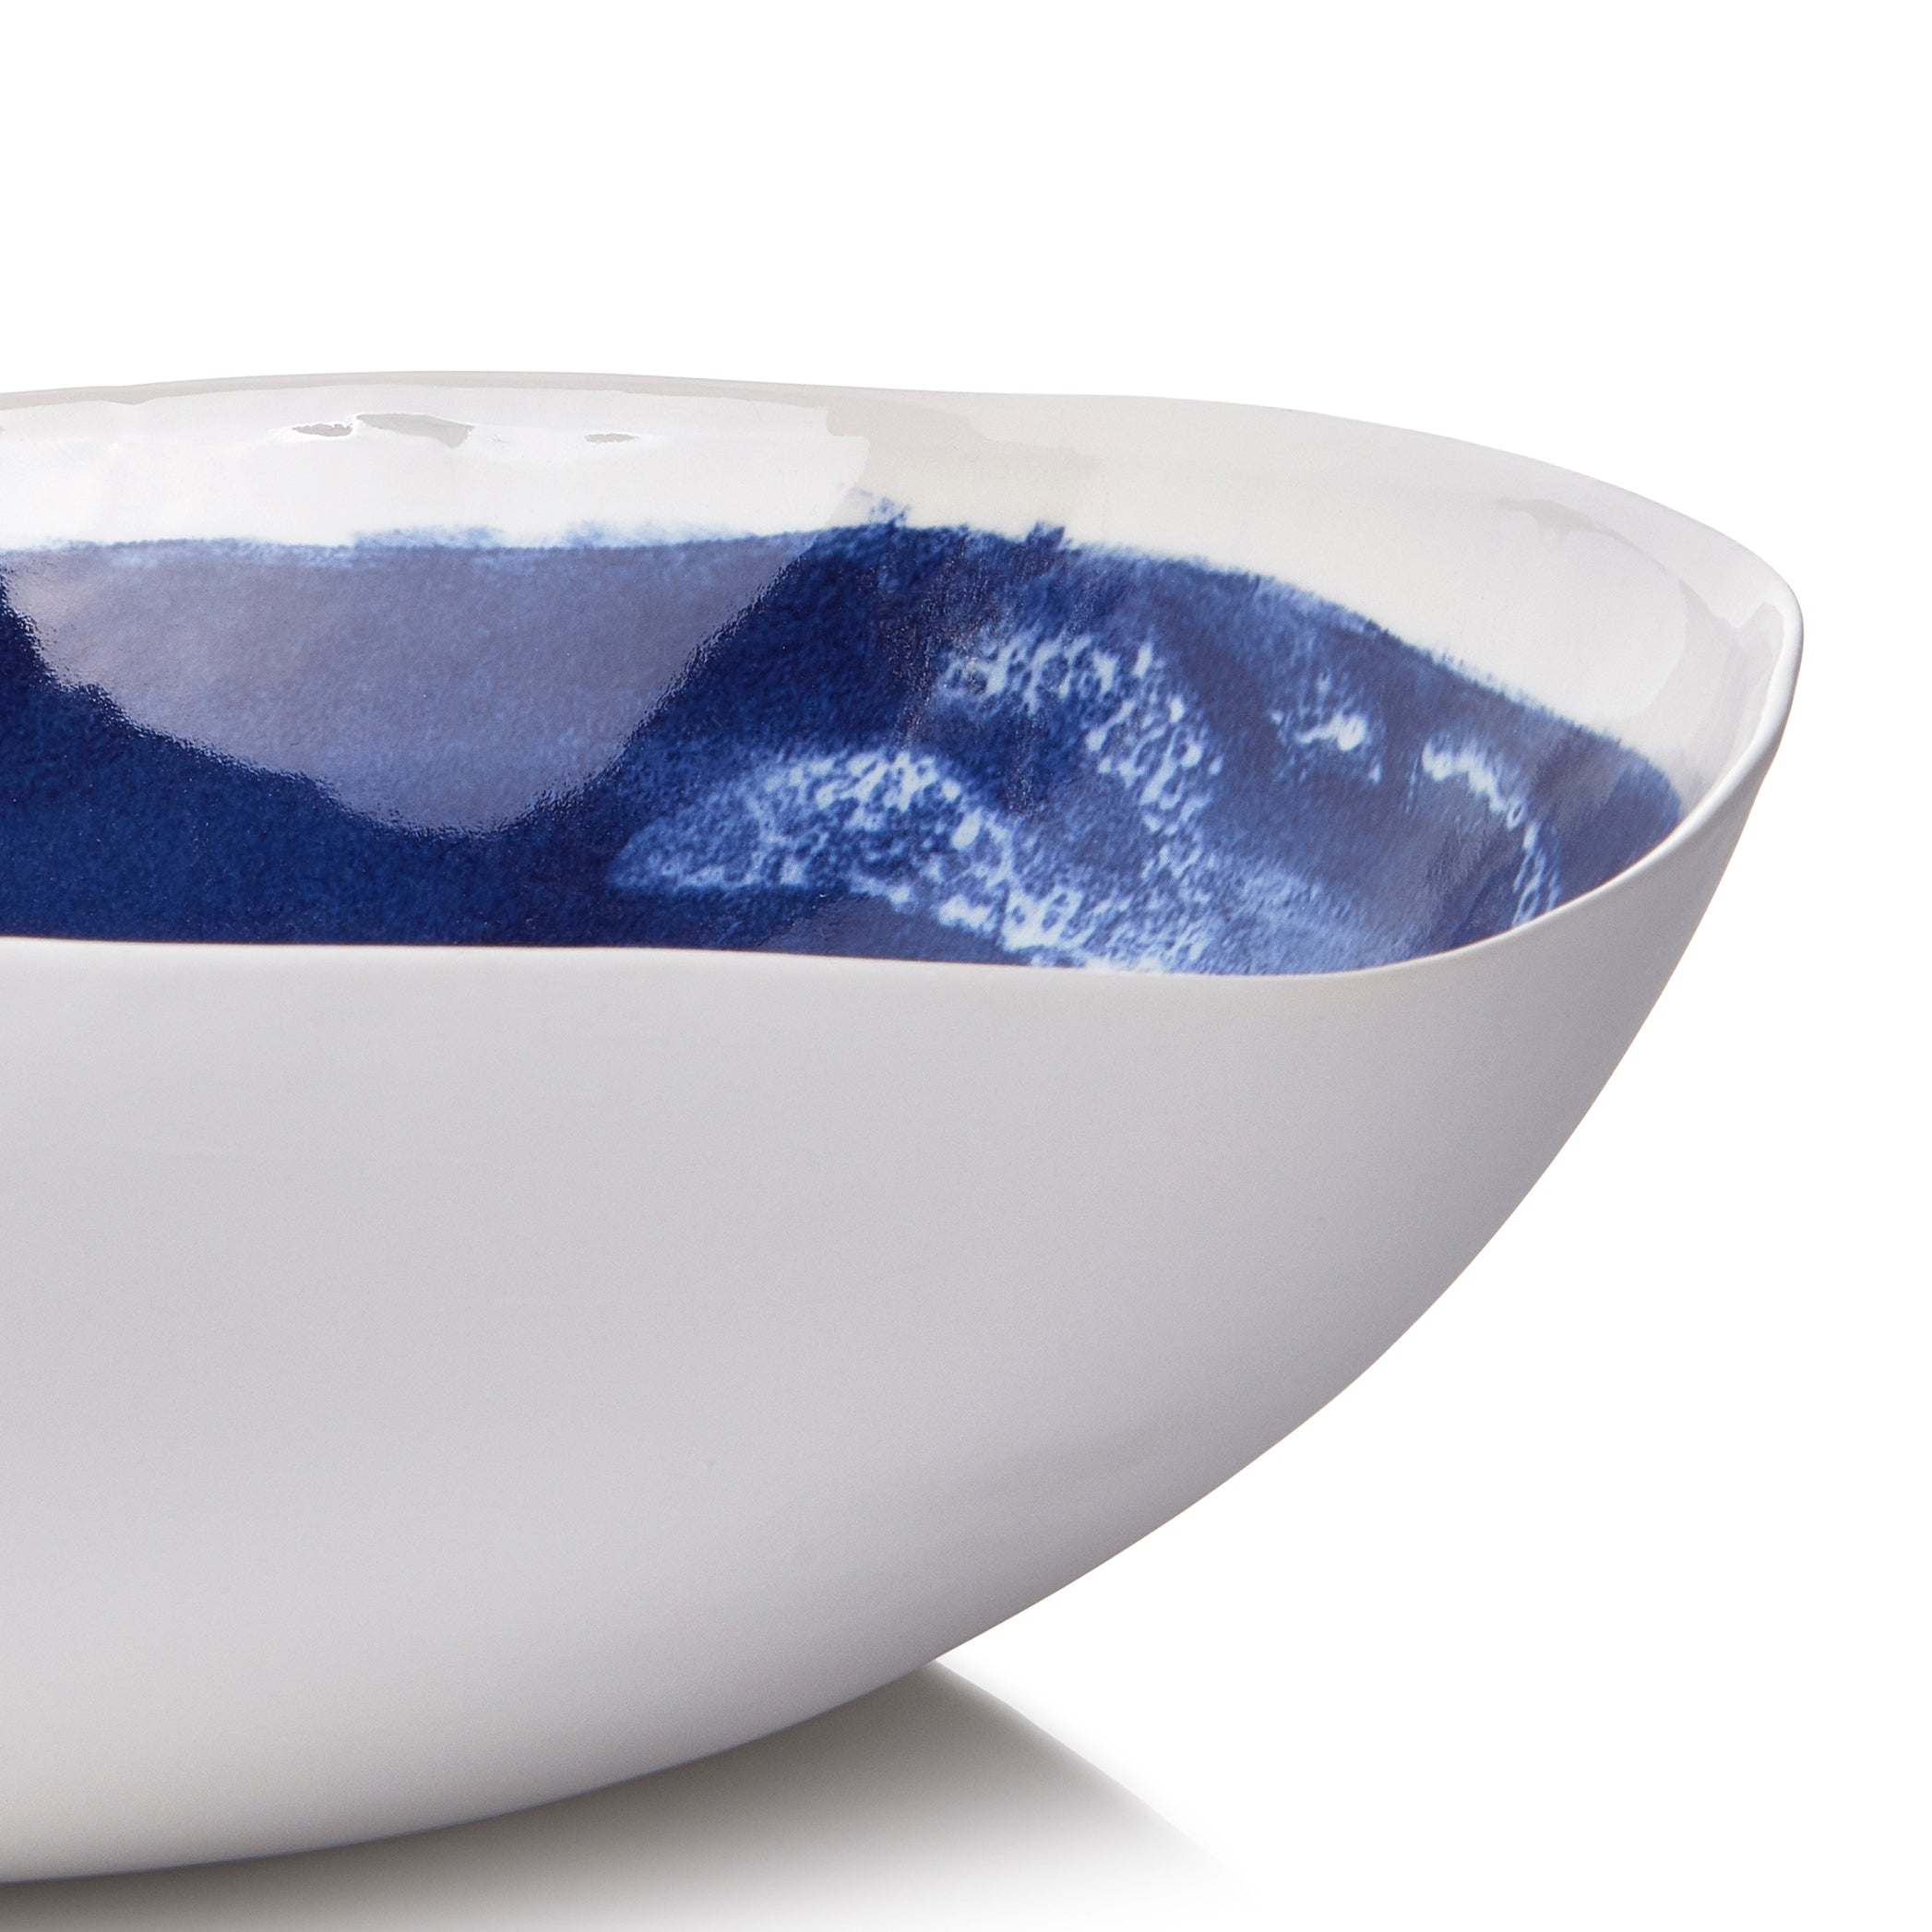 S&B Handmade 43cm Porcelain Extra Large Salad Bowl In Blue Glaze with White Filodendro Leaf